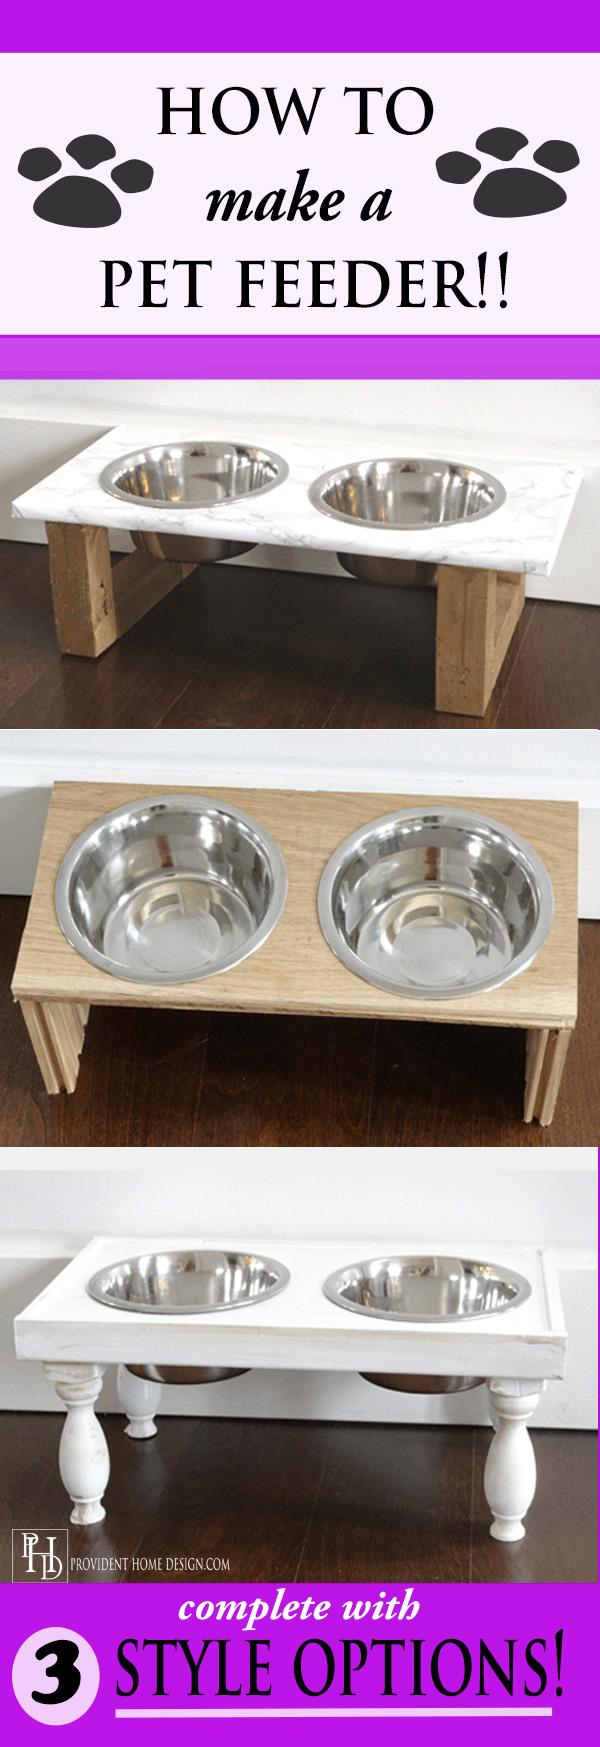 How to Make a Pet Feeder